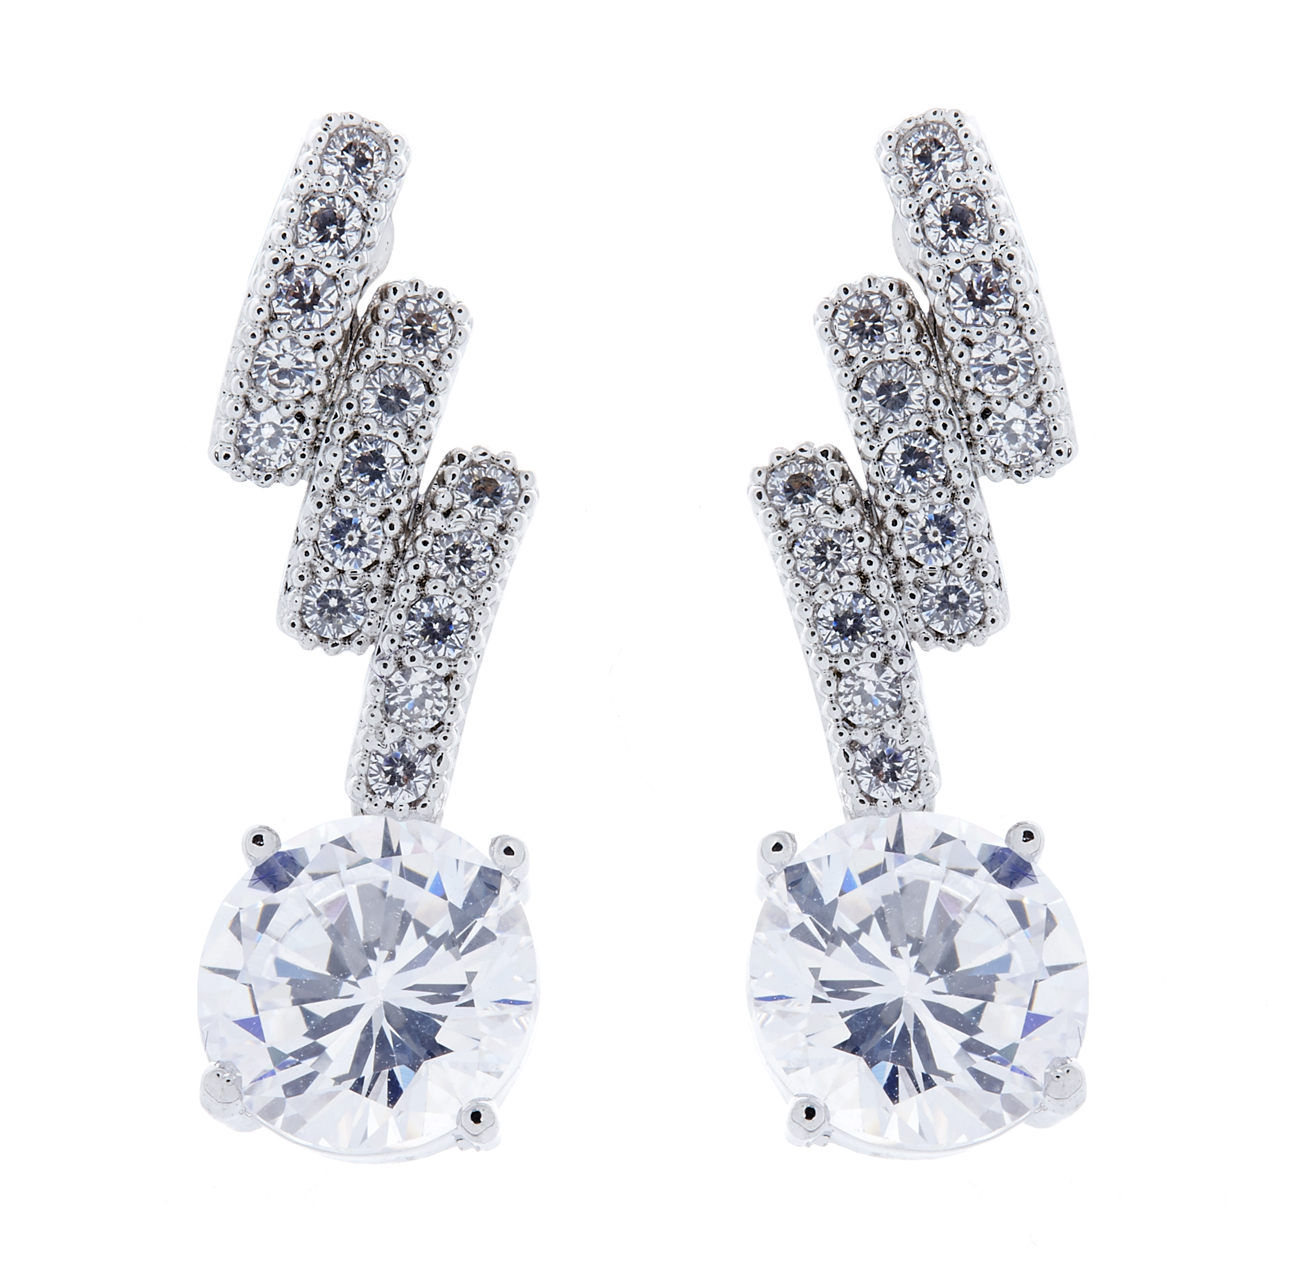 Clip On Earrings - Molly - silver luxury drop earring with clear cubic zirconia crystals and stone